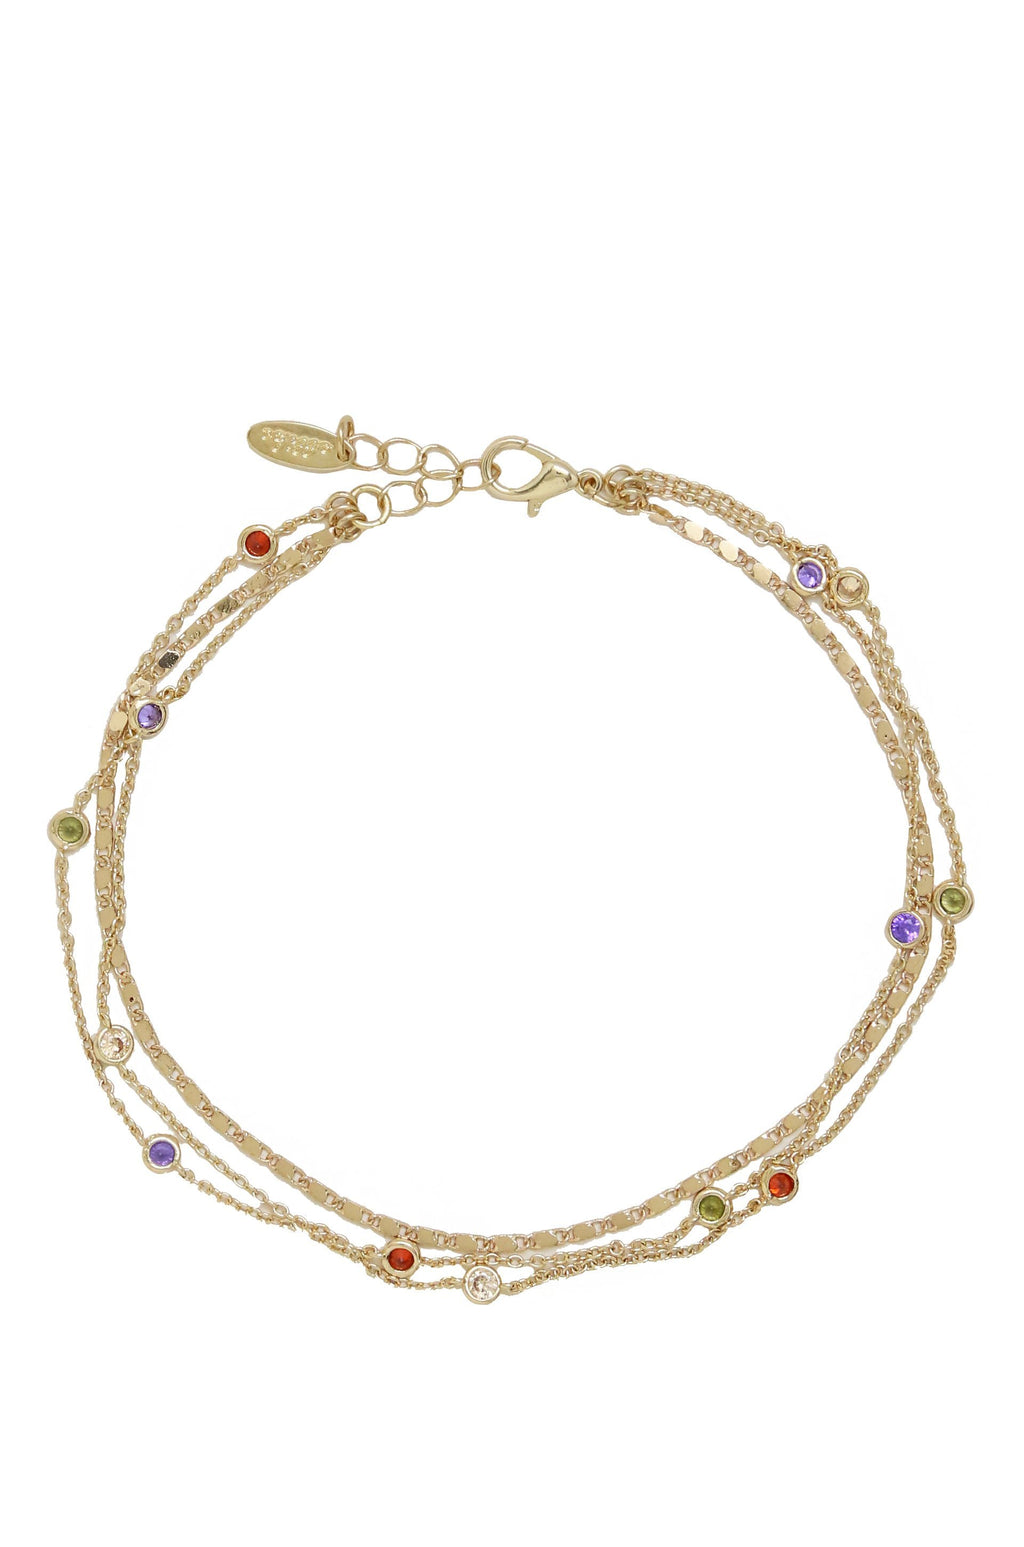 'Over the Rainbow' 18kt Gold Plated Anklet